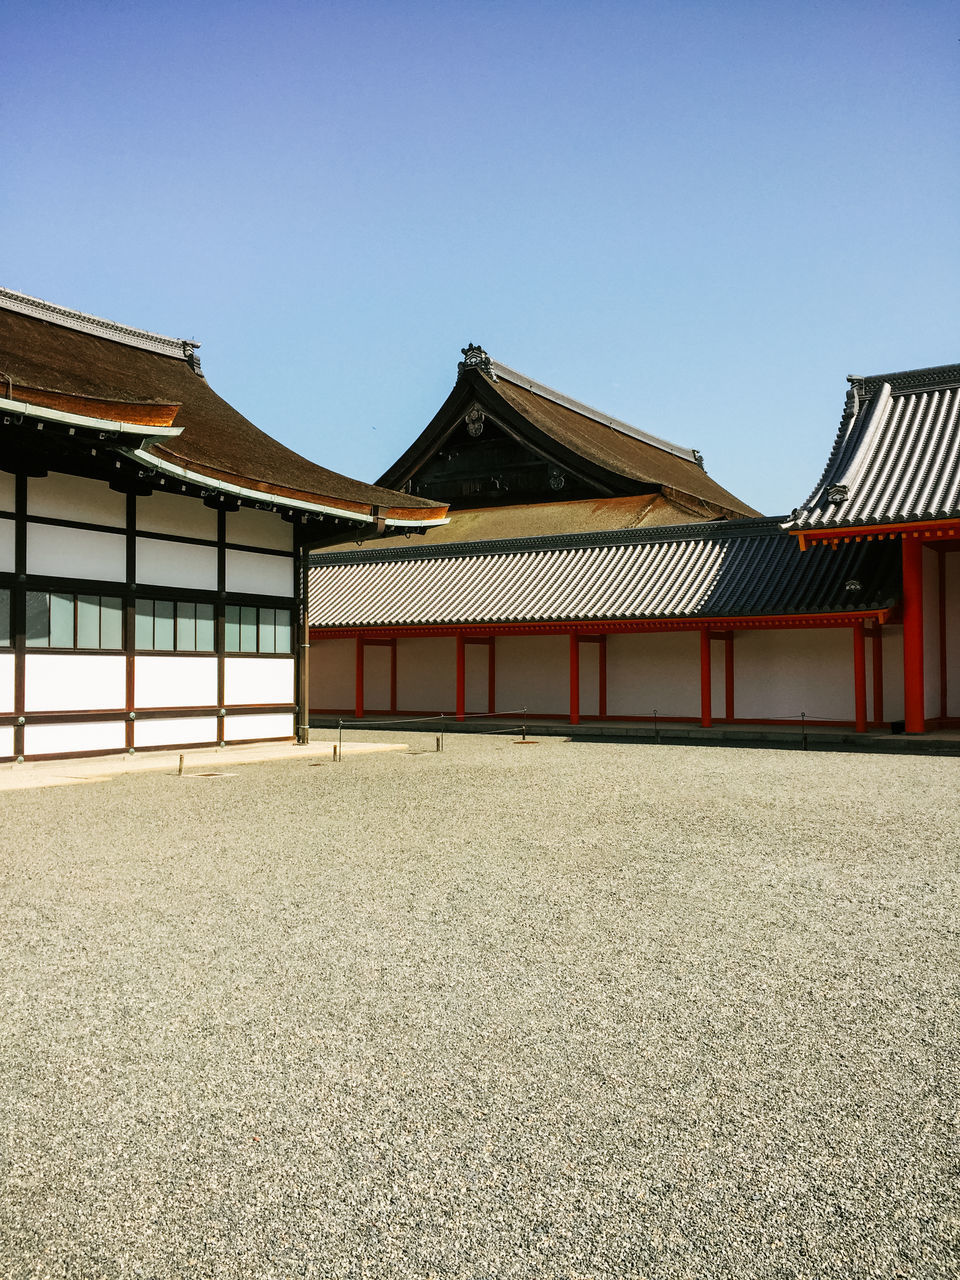 architecture, built structure, building exterior, clear sky, roof, house, no people, day, outdoors, sky, place of worship